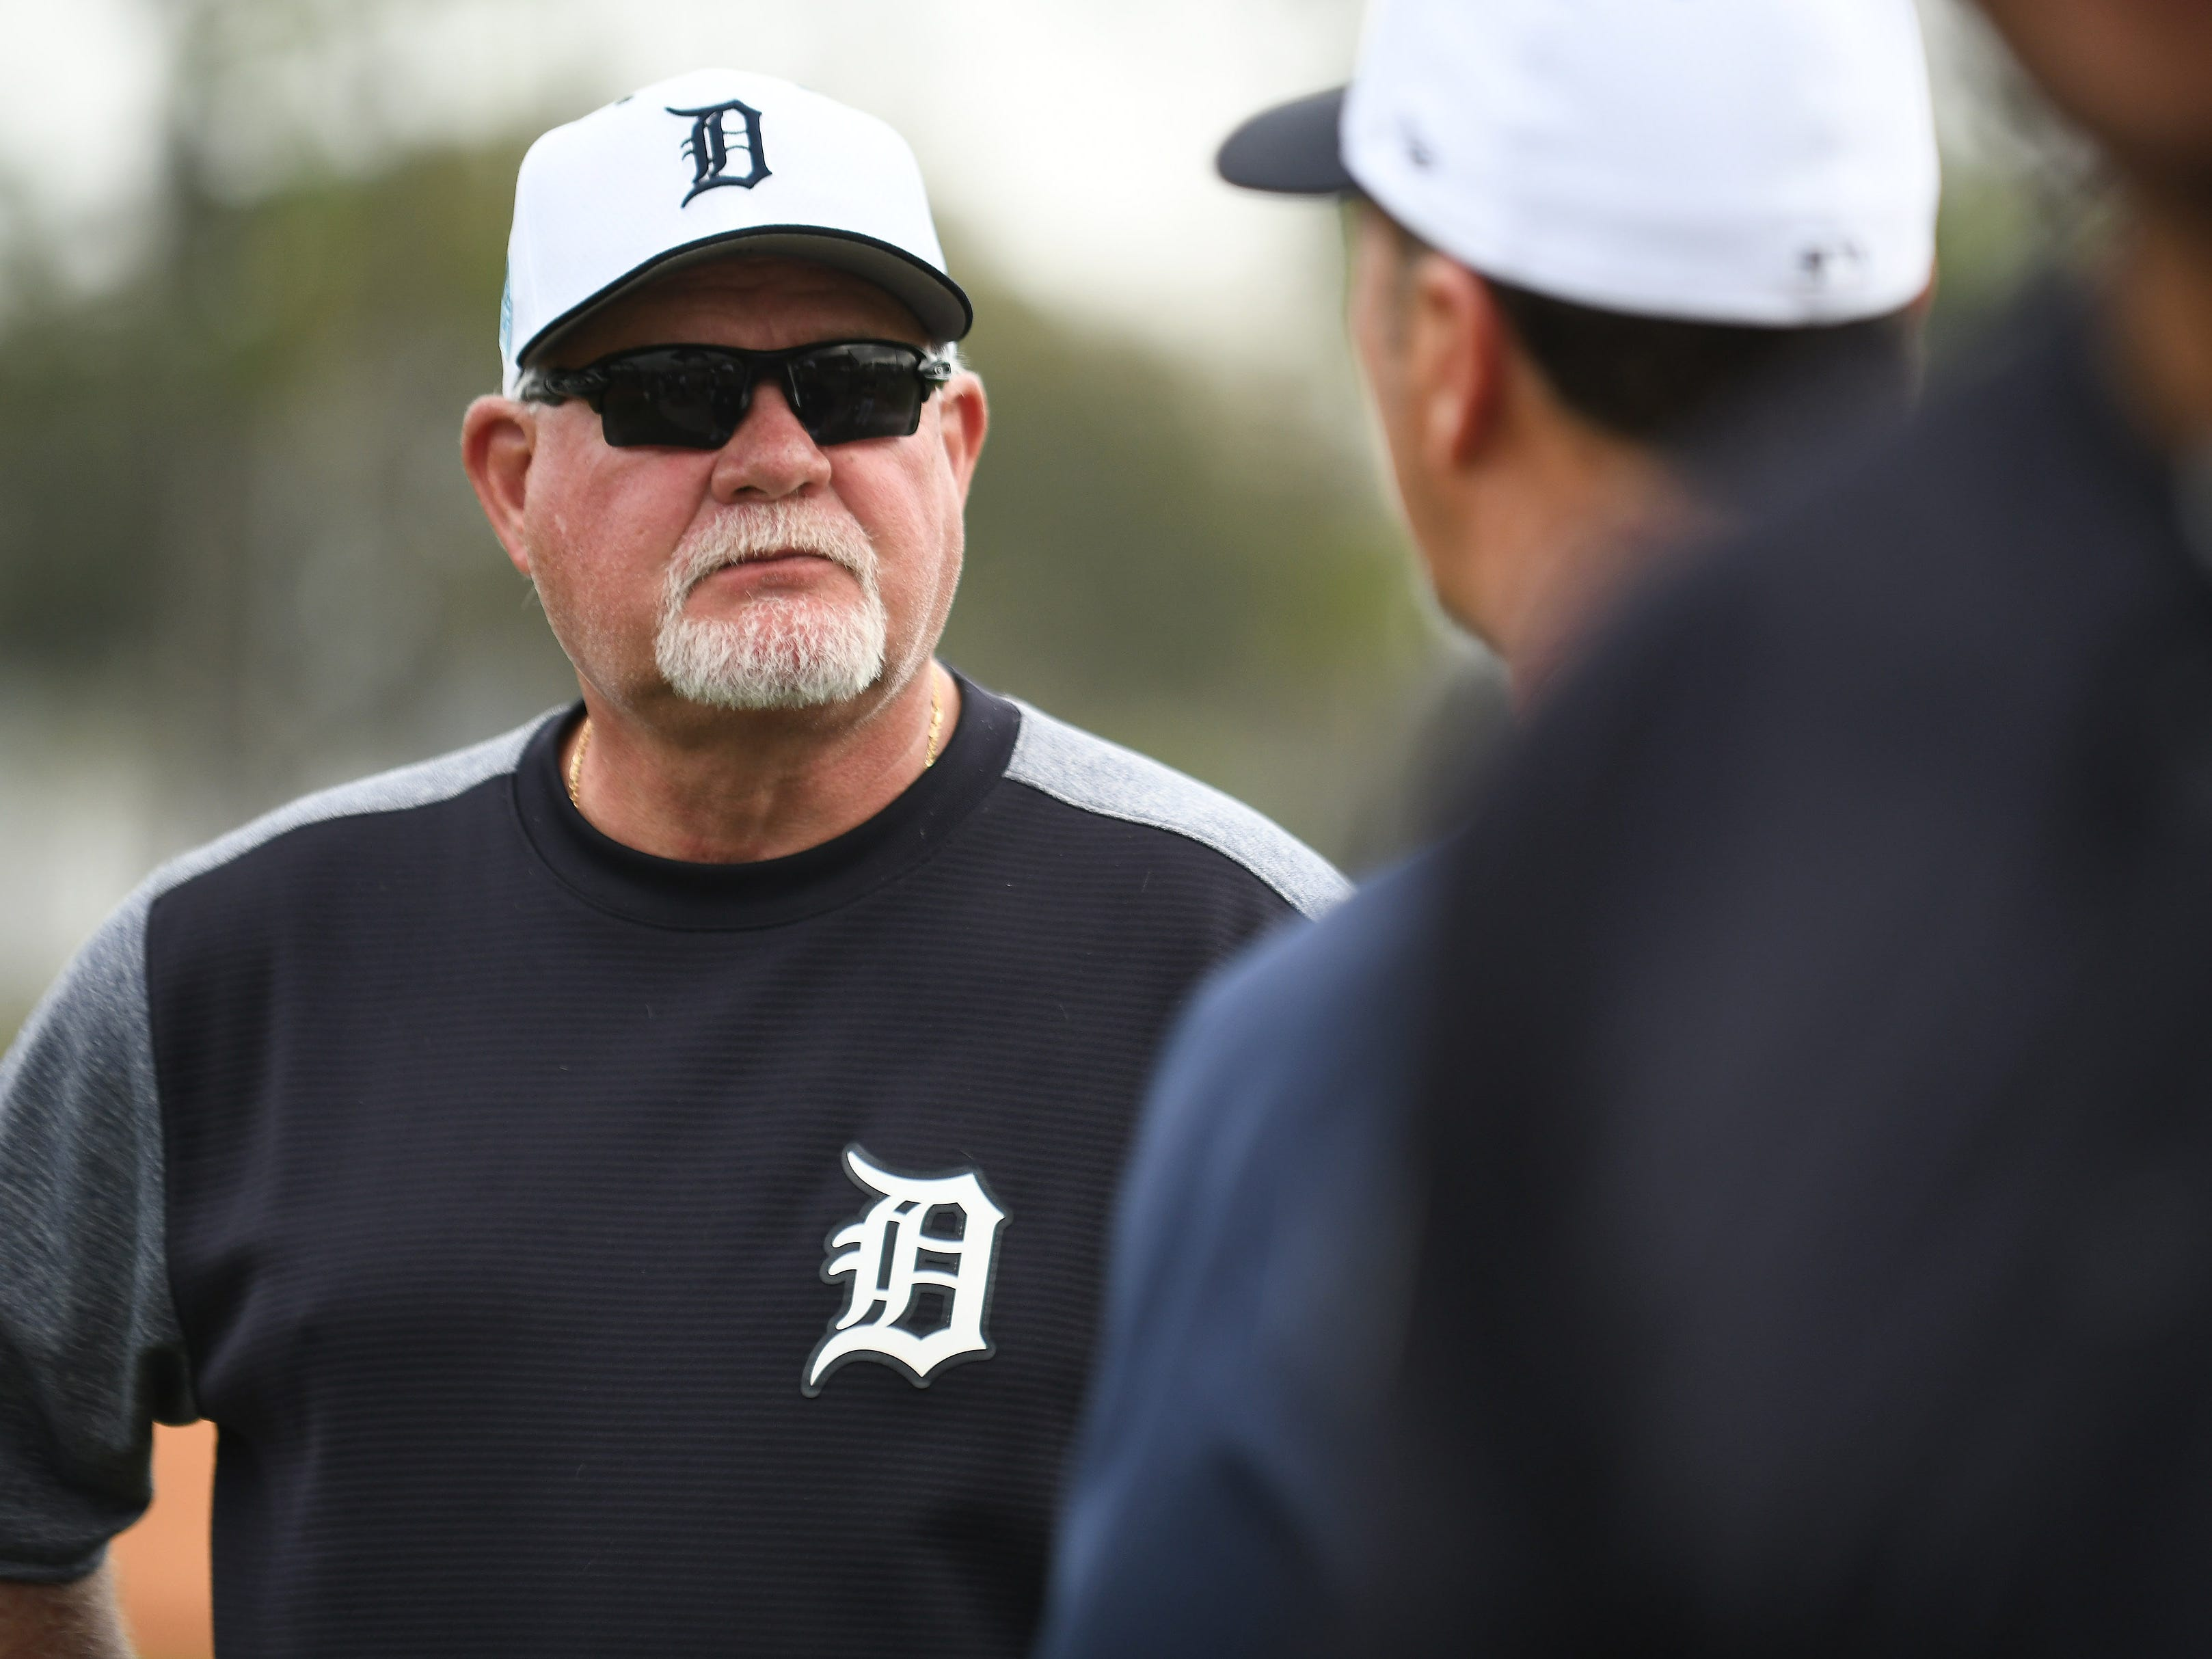 Tigers manager Ron Gardenhire oversees batting practice.